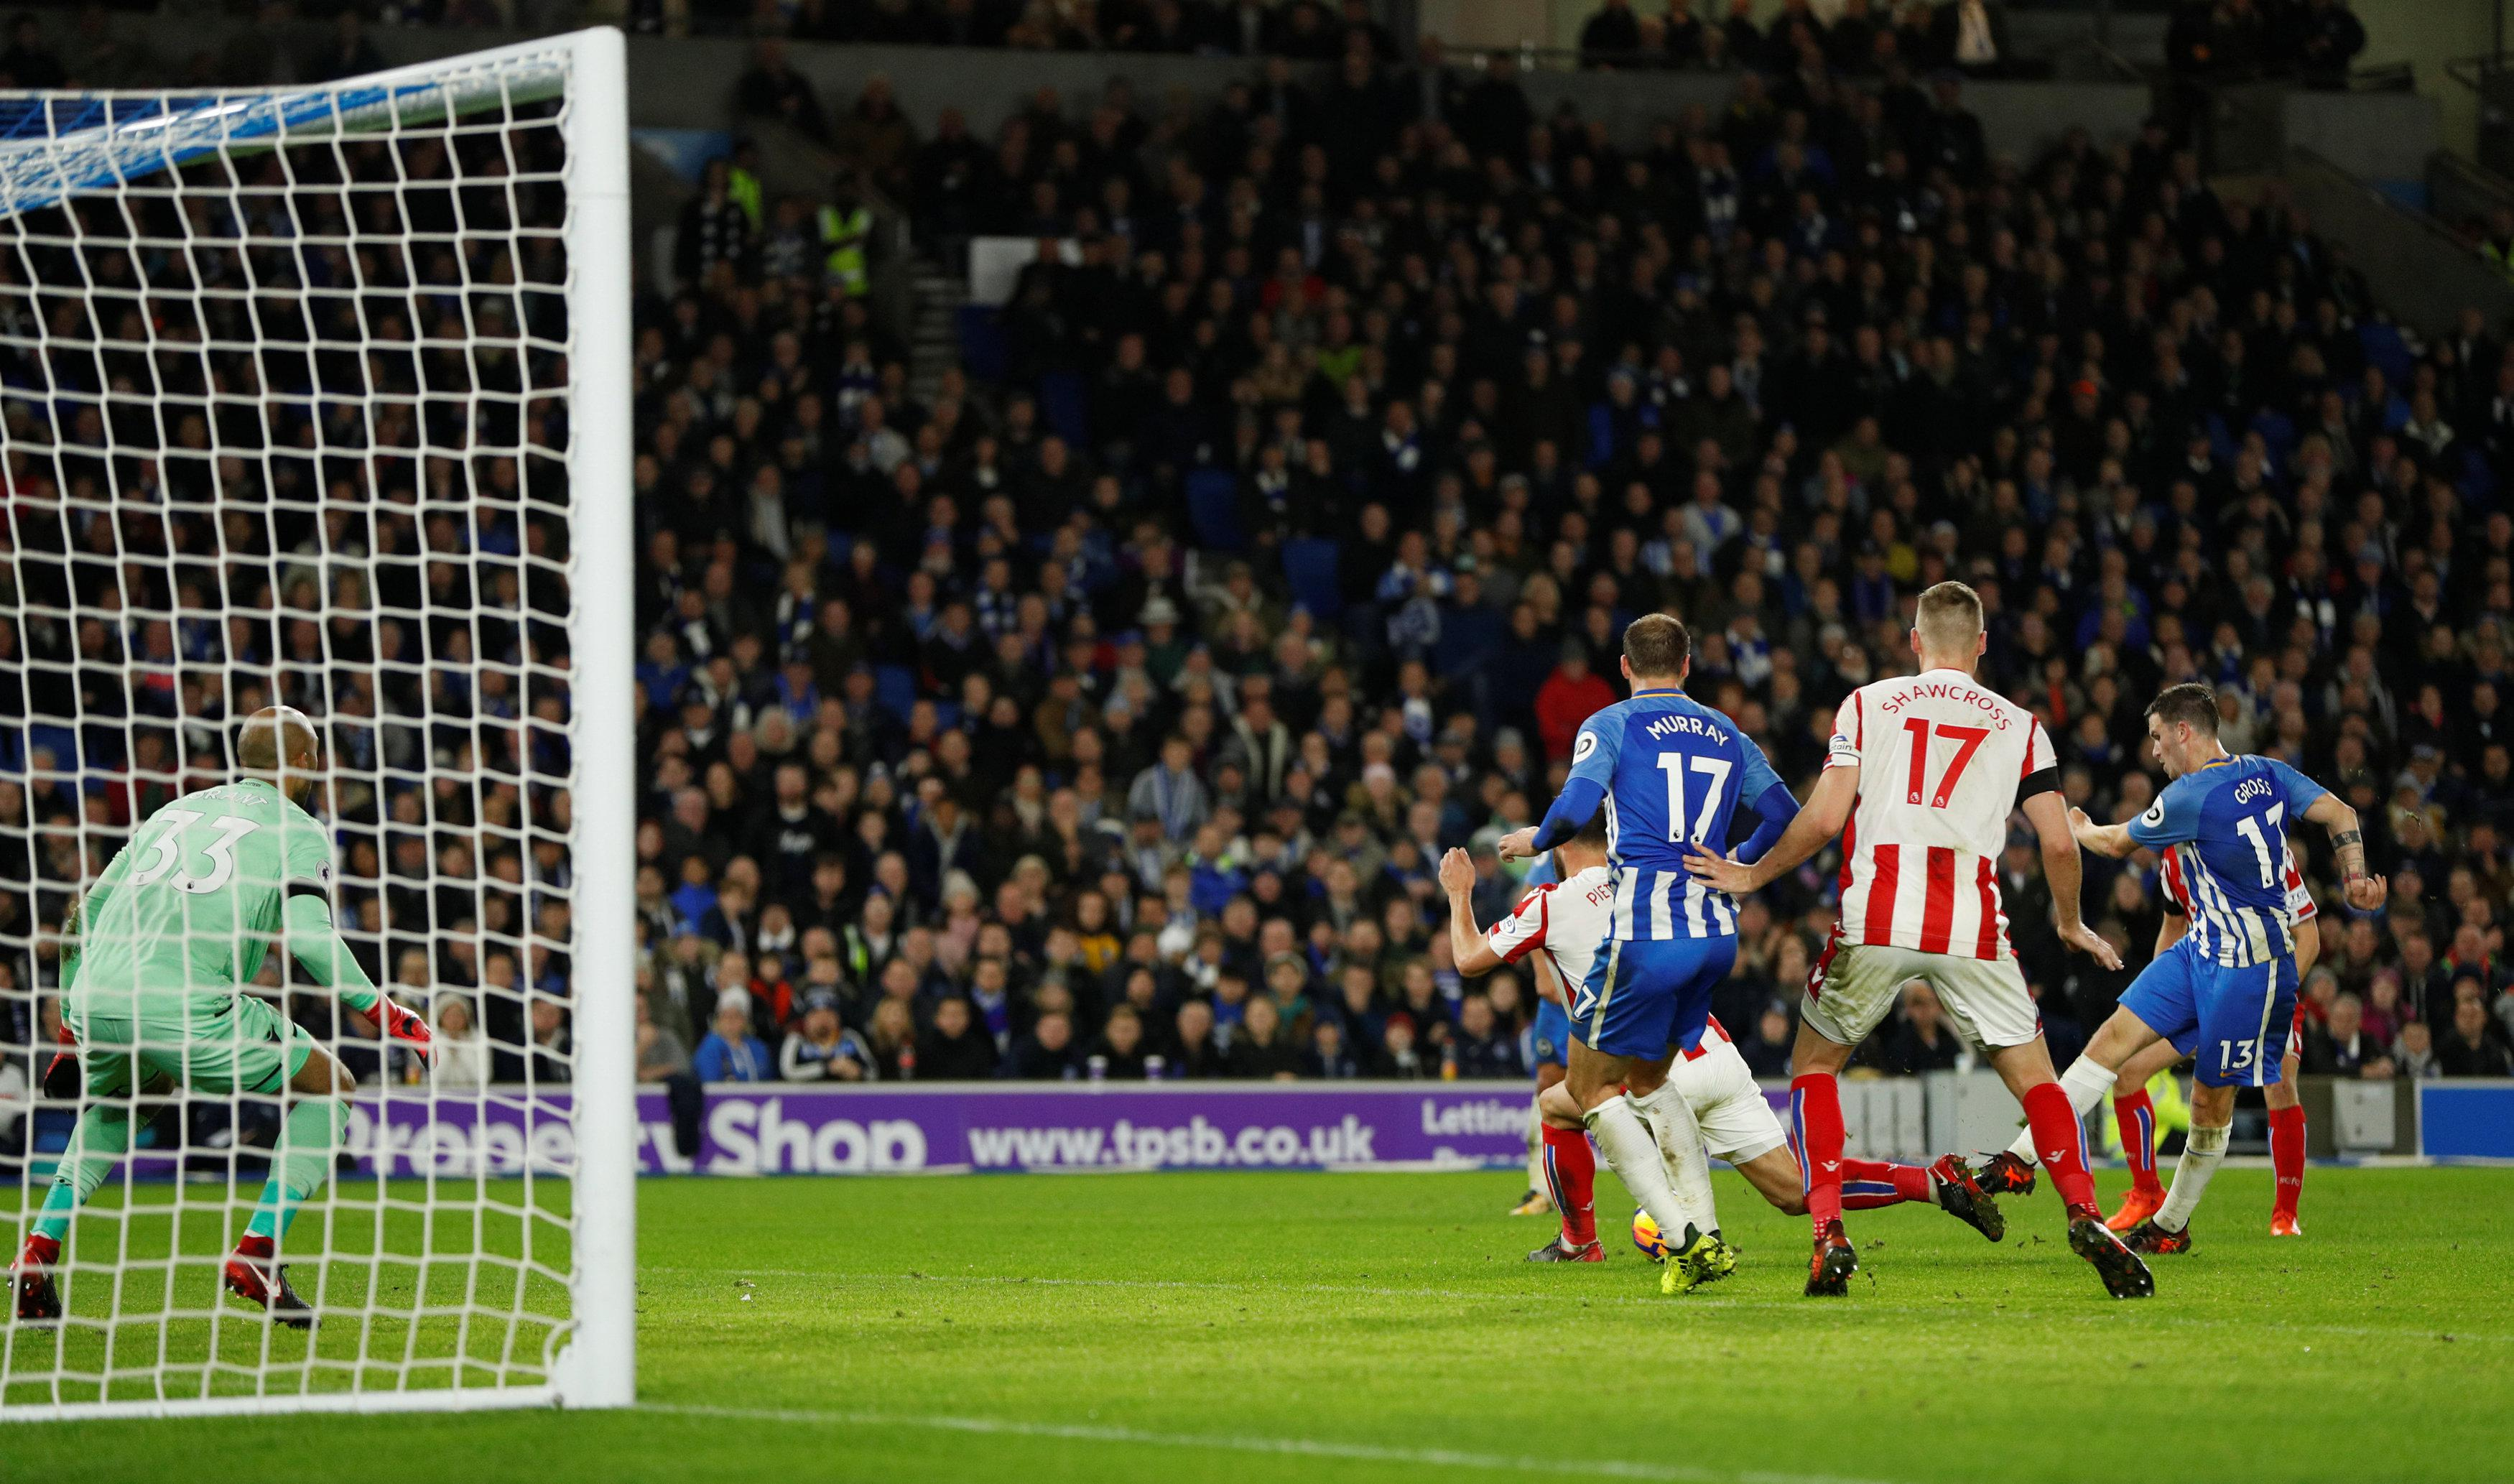 Pascal Gross put Brighton level with a strike that went through Lee Grant's legs